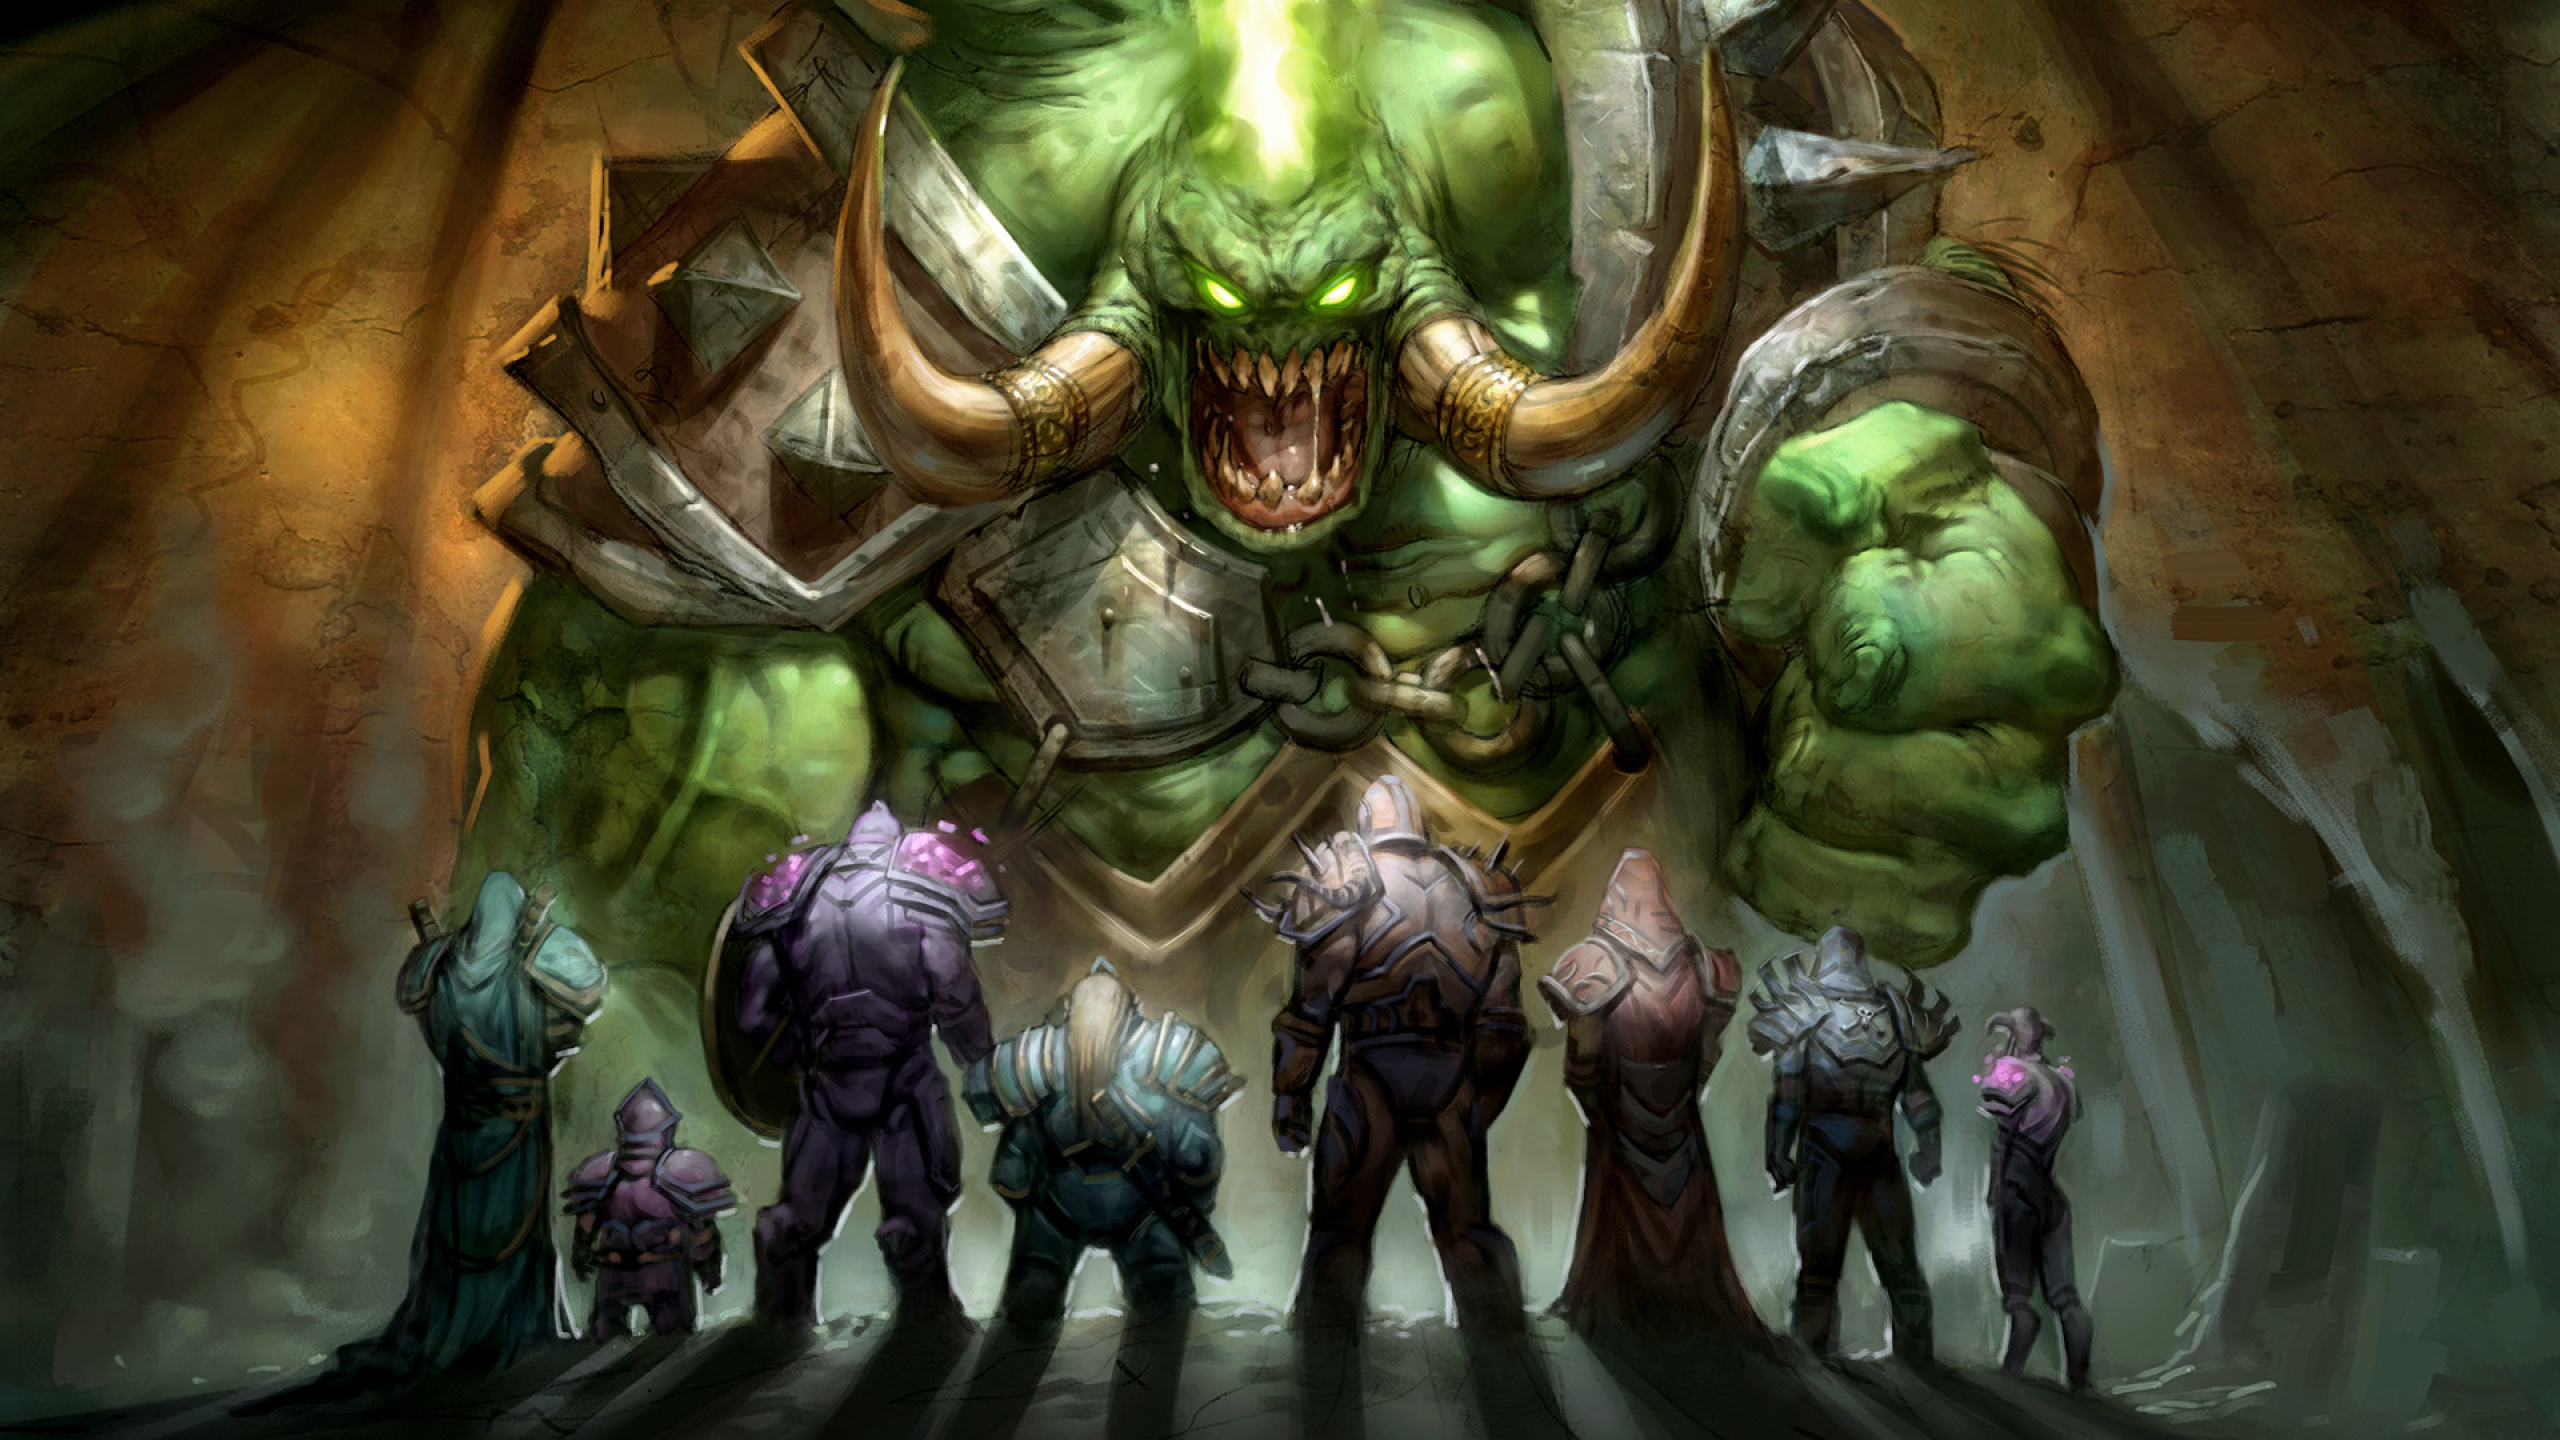 2560x1440 world of warcraft, wow, heroes 1440P Resolution